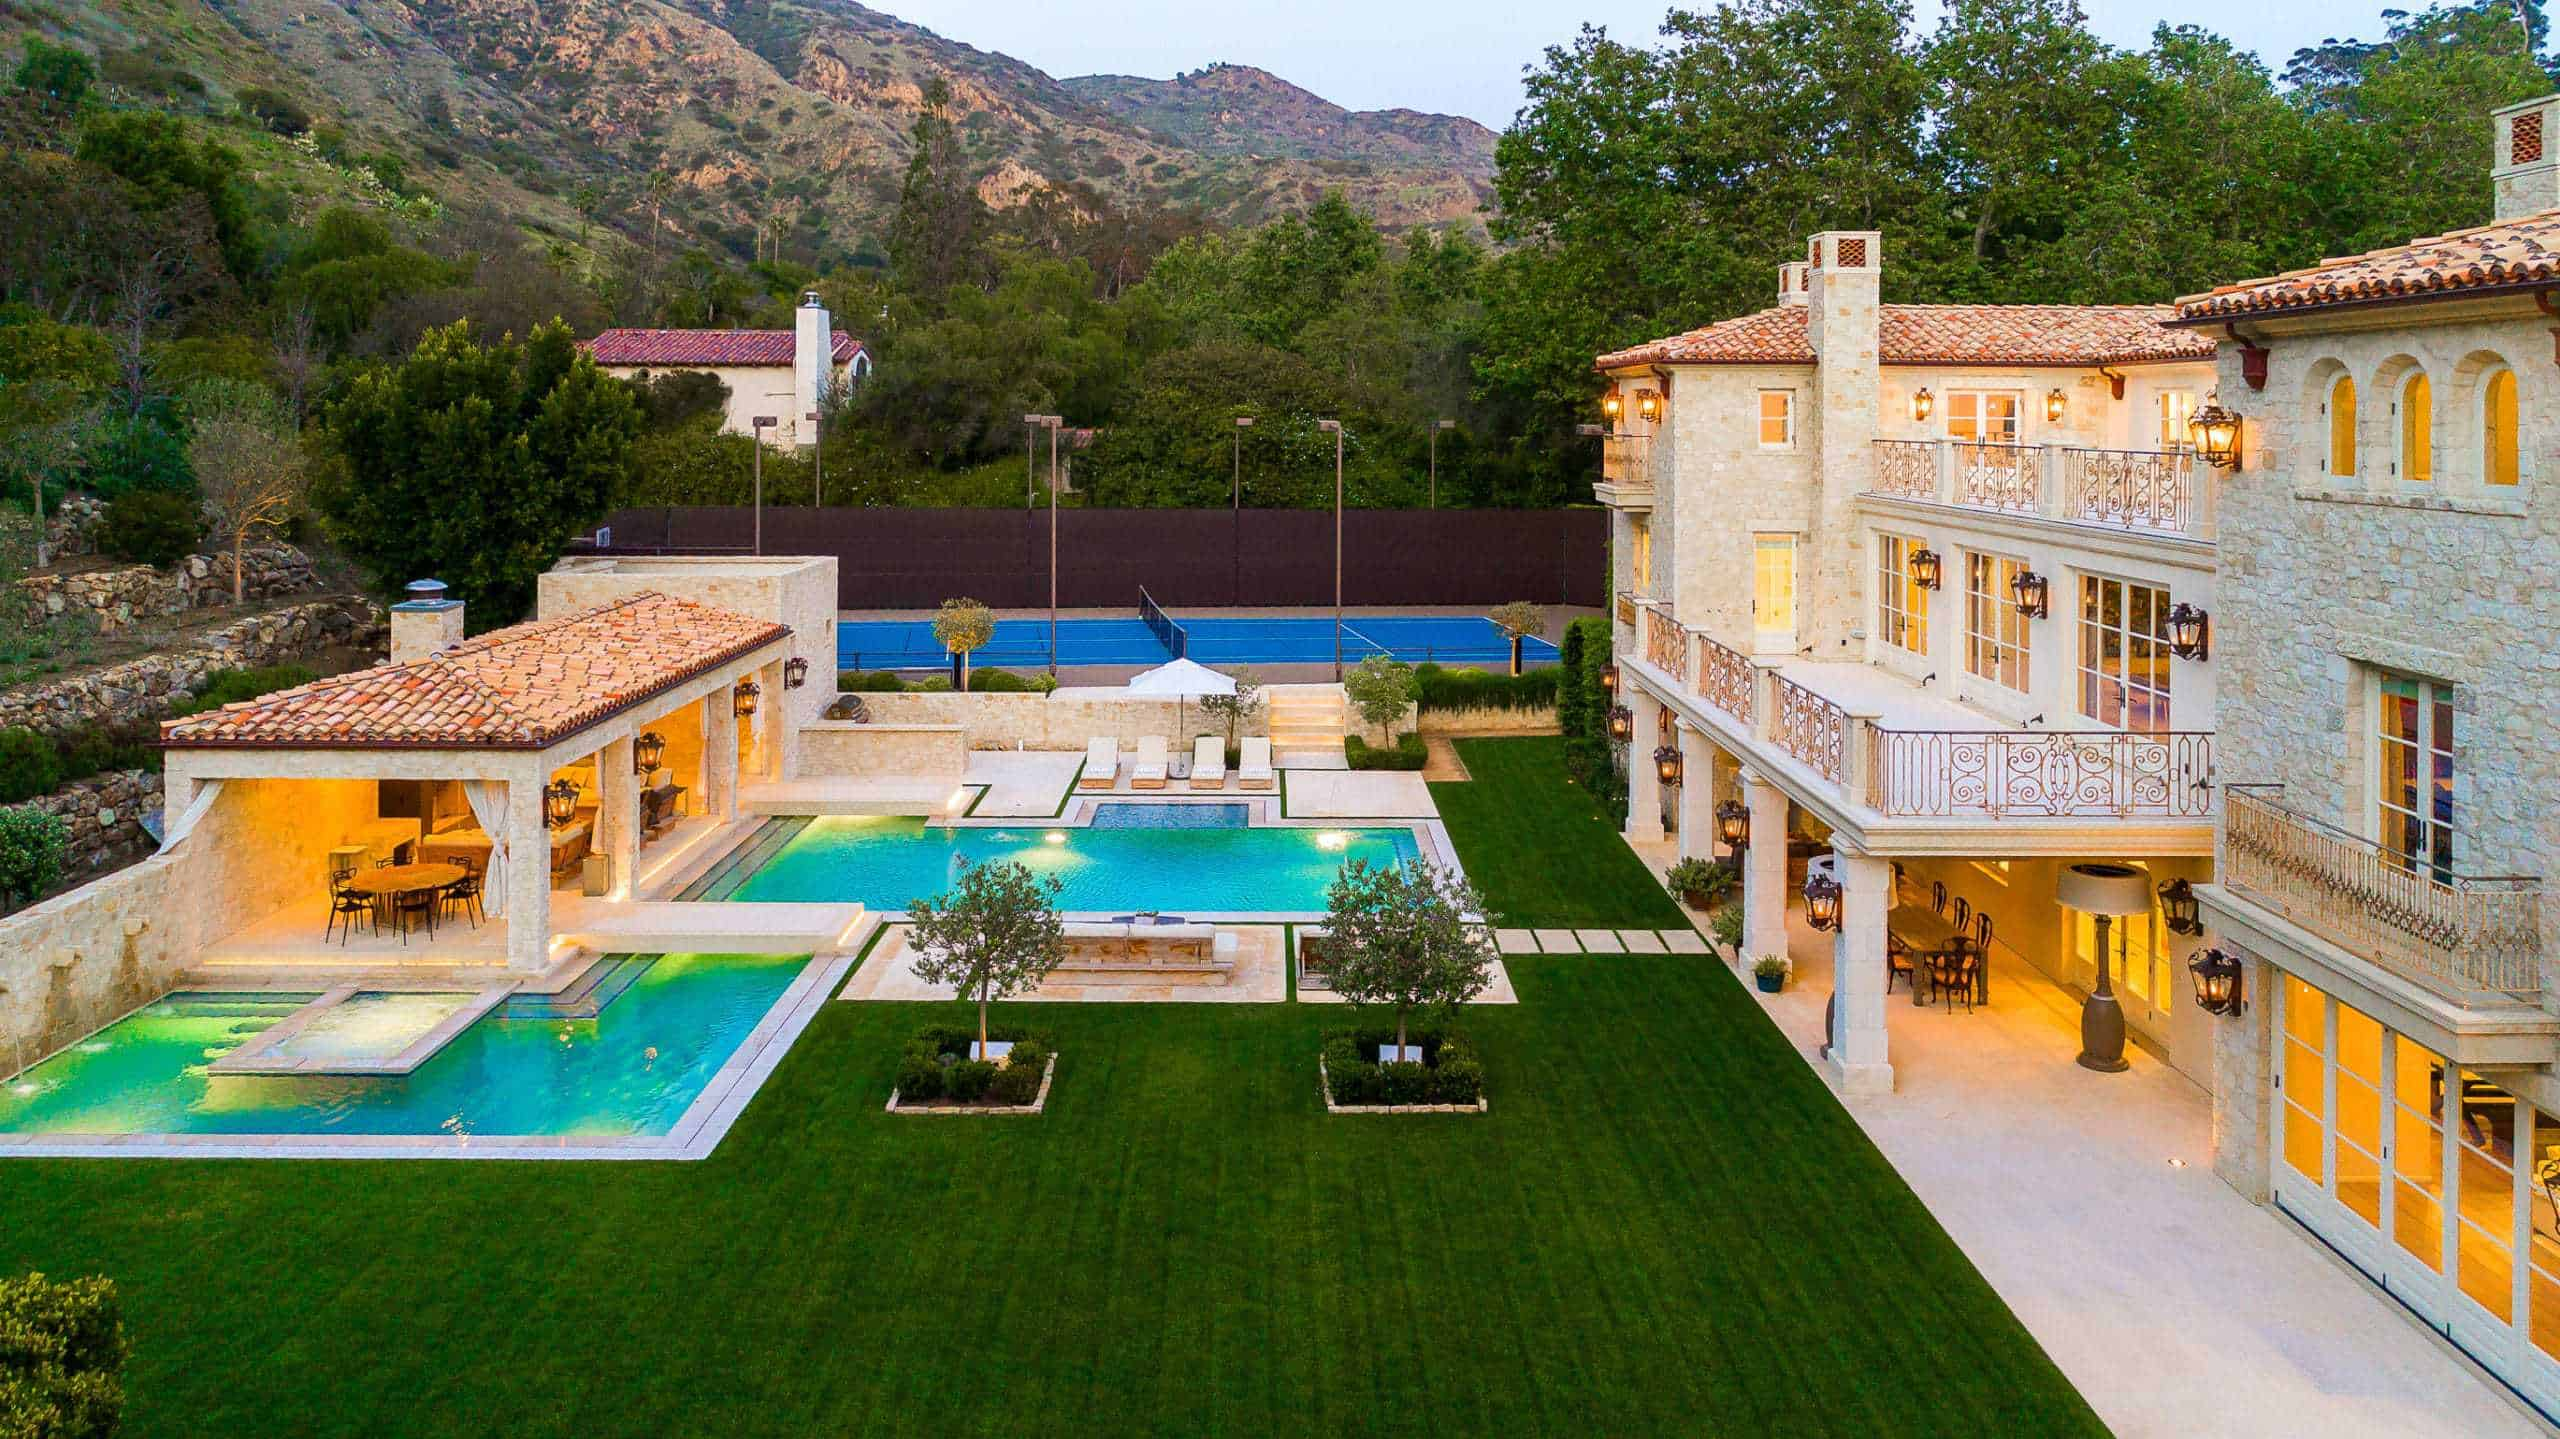 mansion in California with 2 pools